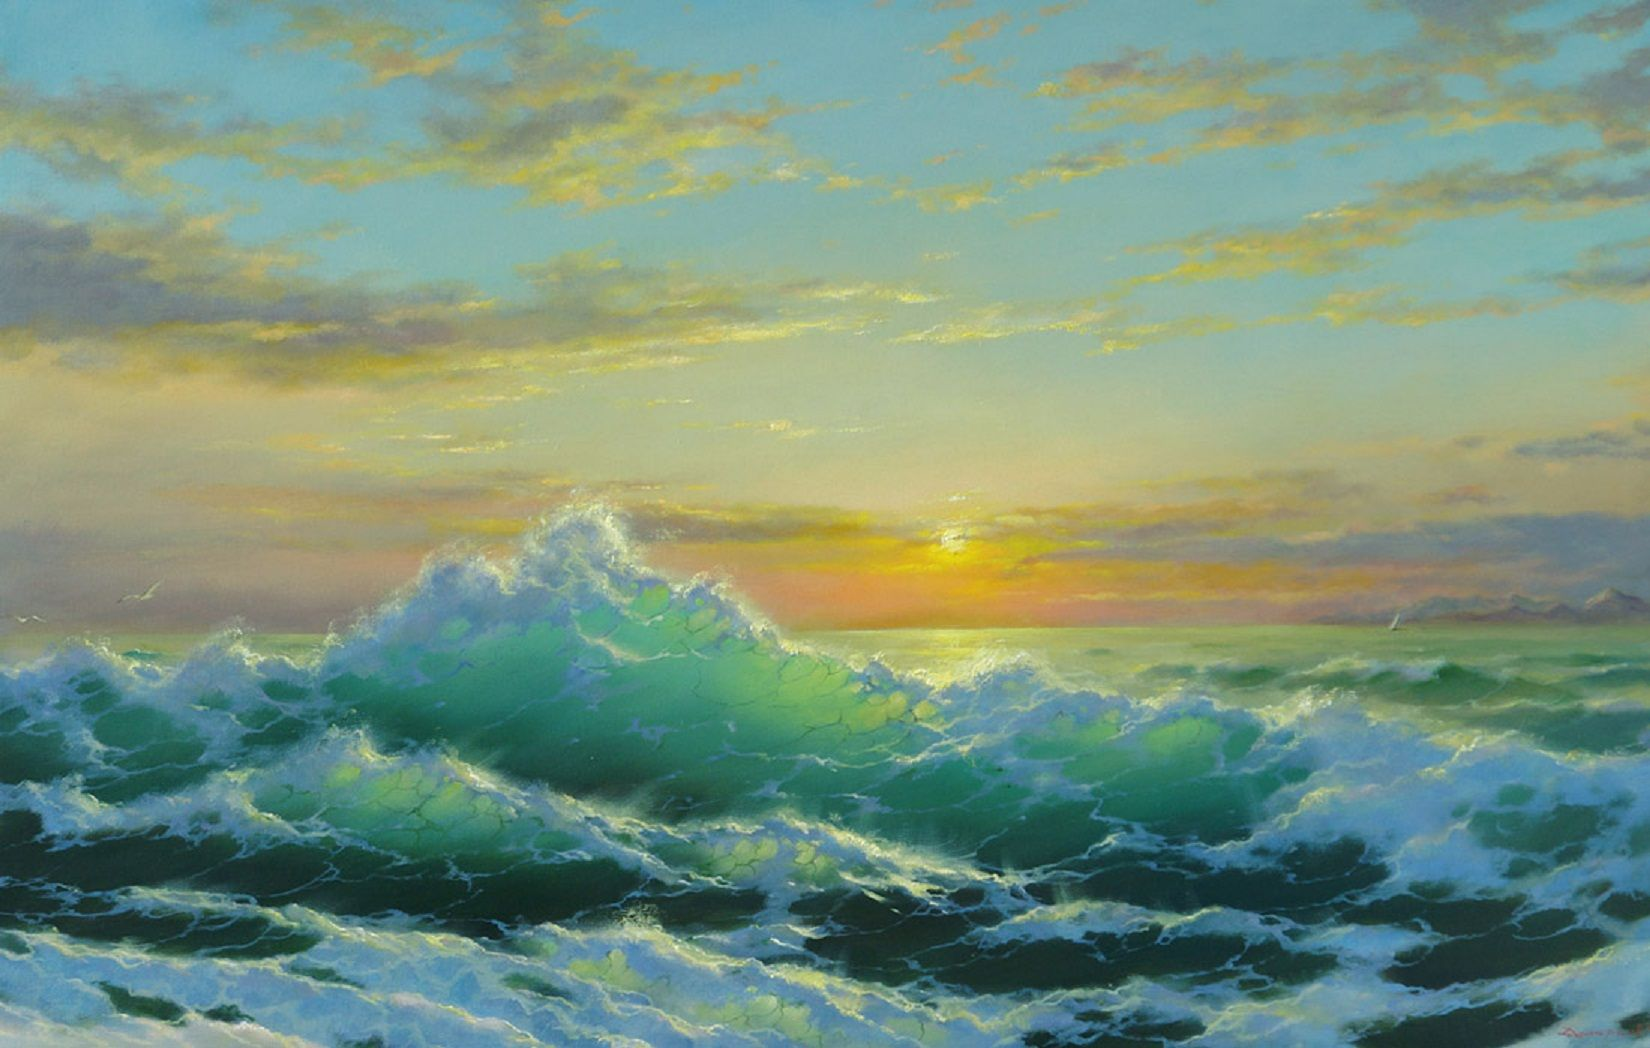 Artistic Horizon Ocean Painting Sea Sunset 1650x1048